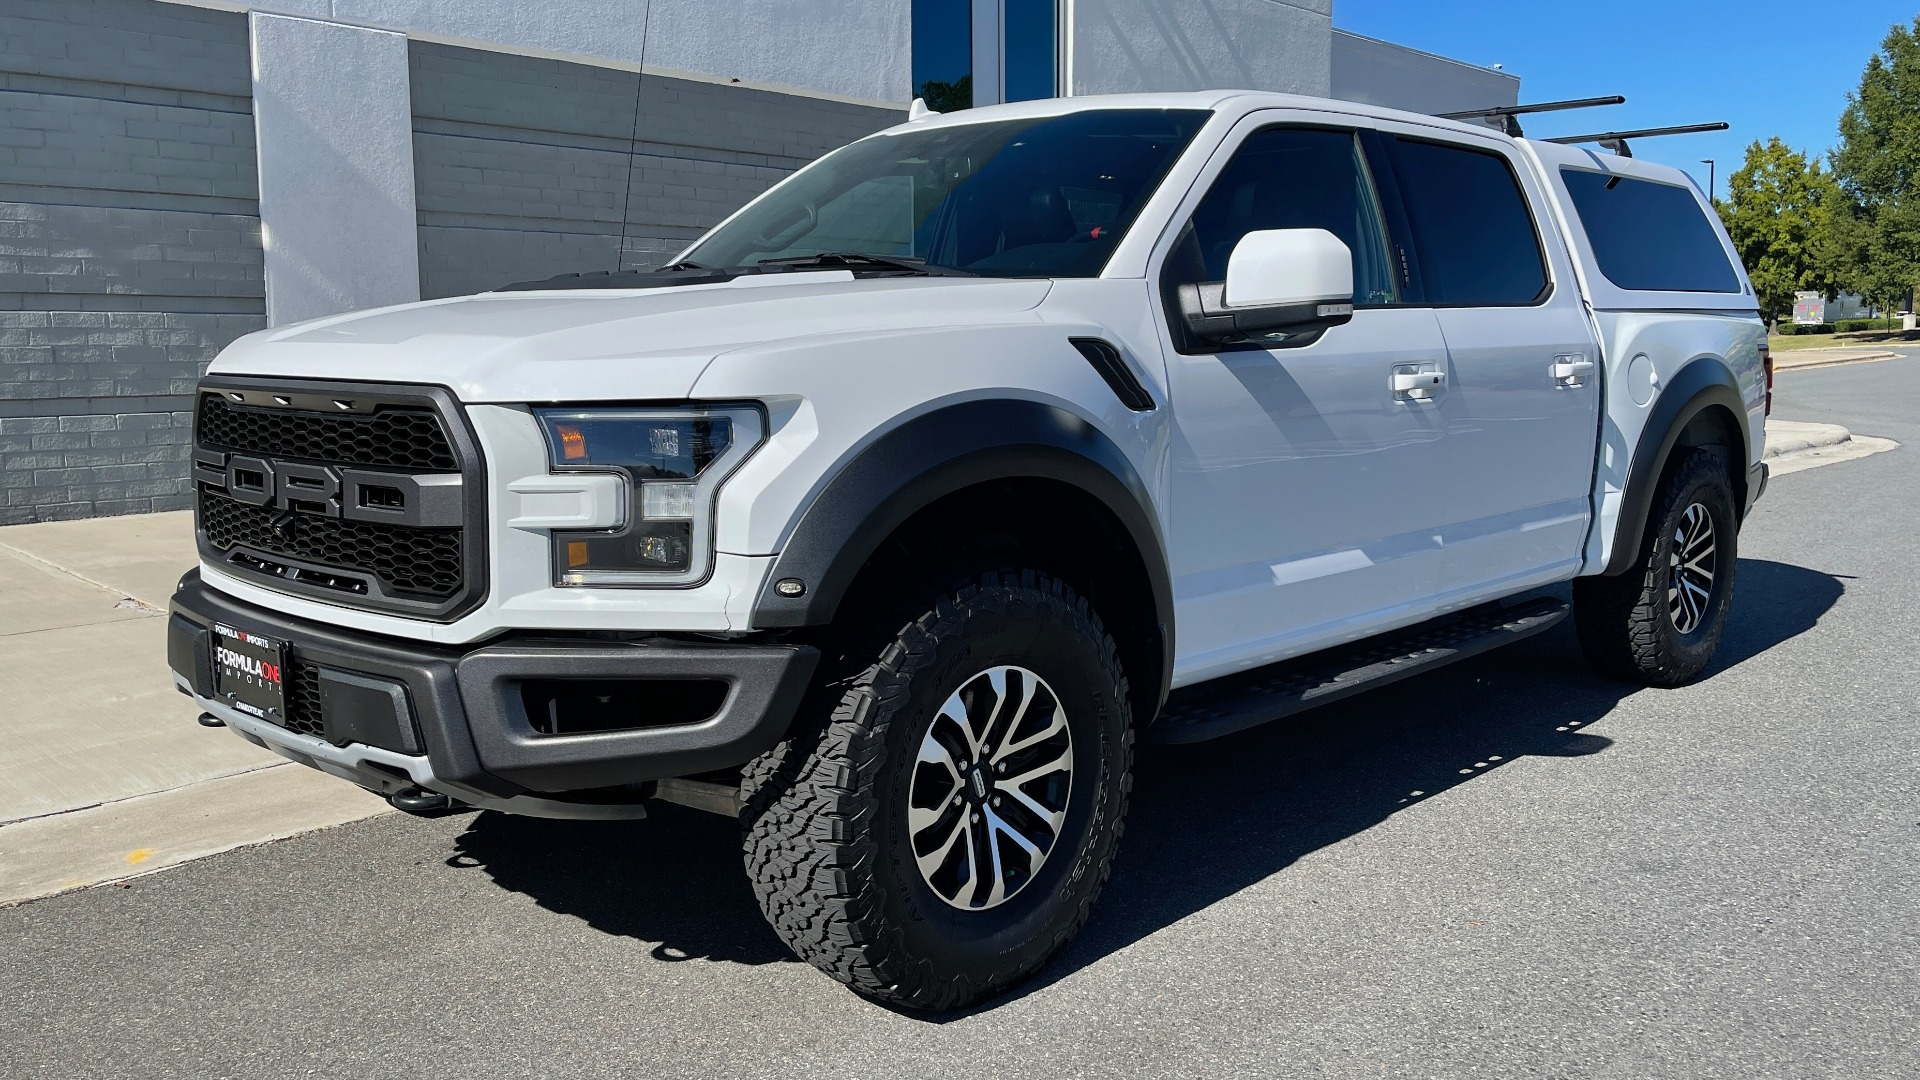 Used 2019 Ford F-150 RAPTOR 4X4 SUPERCREW / NAV / BLIS / B&O SND / REMOTE START / REARVIEW for sale $65,999 at Formula Imports in Charlotte NC 28227 3